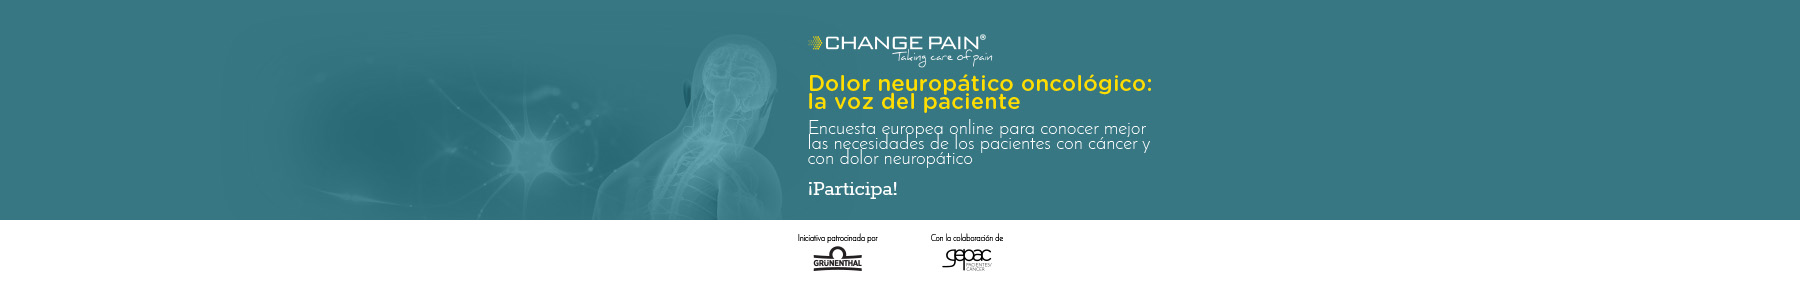 banner-aeal-dolor-neuropatico-oncologico-gepac